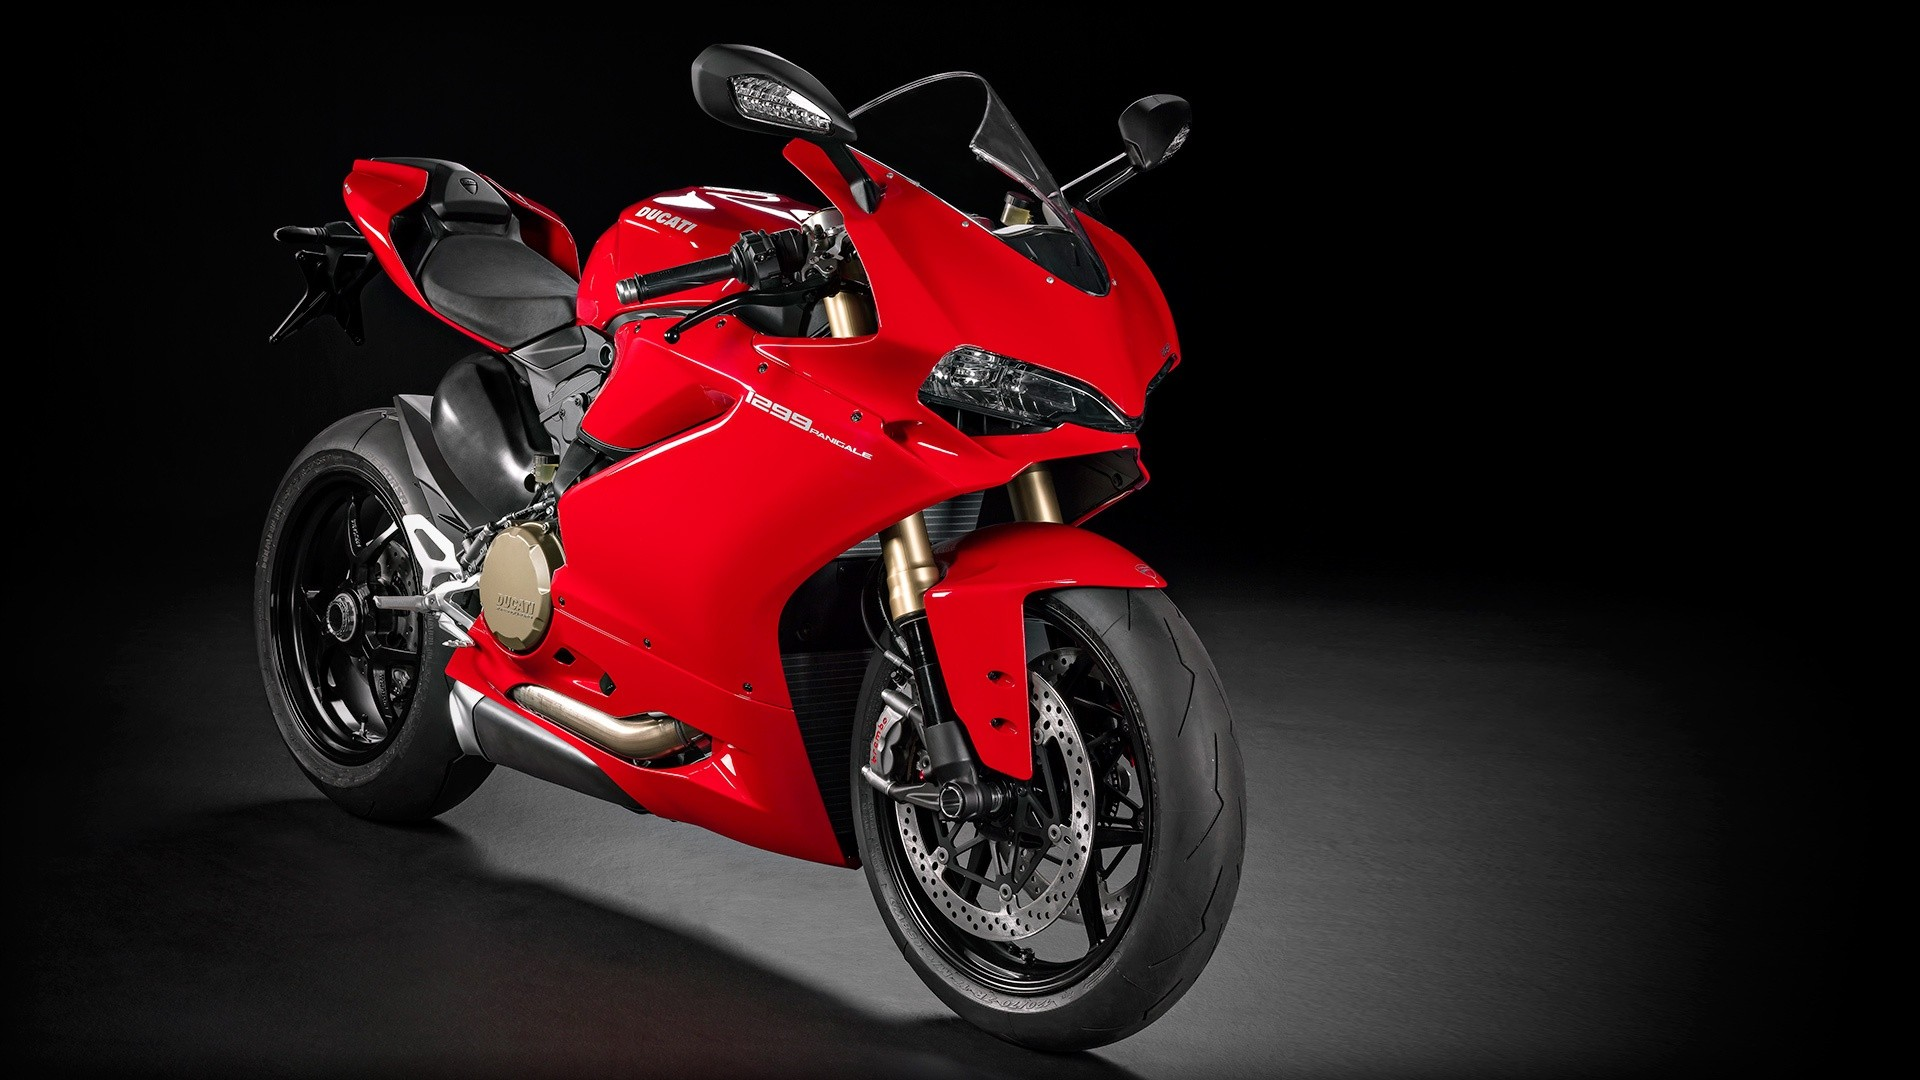 Ducati 1299 Panigale S 4k Wallpapers: DUCATI Panigale 1299 Specs